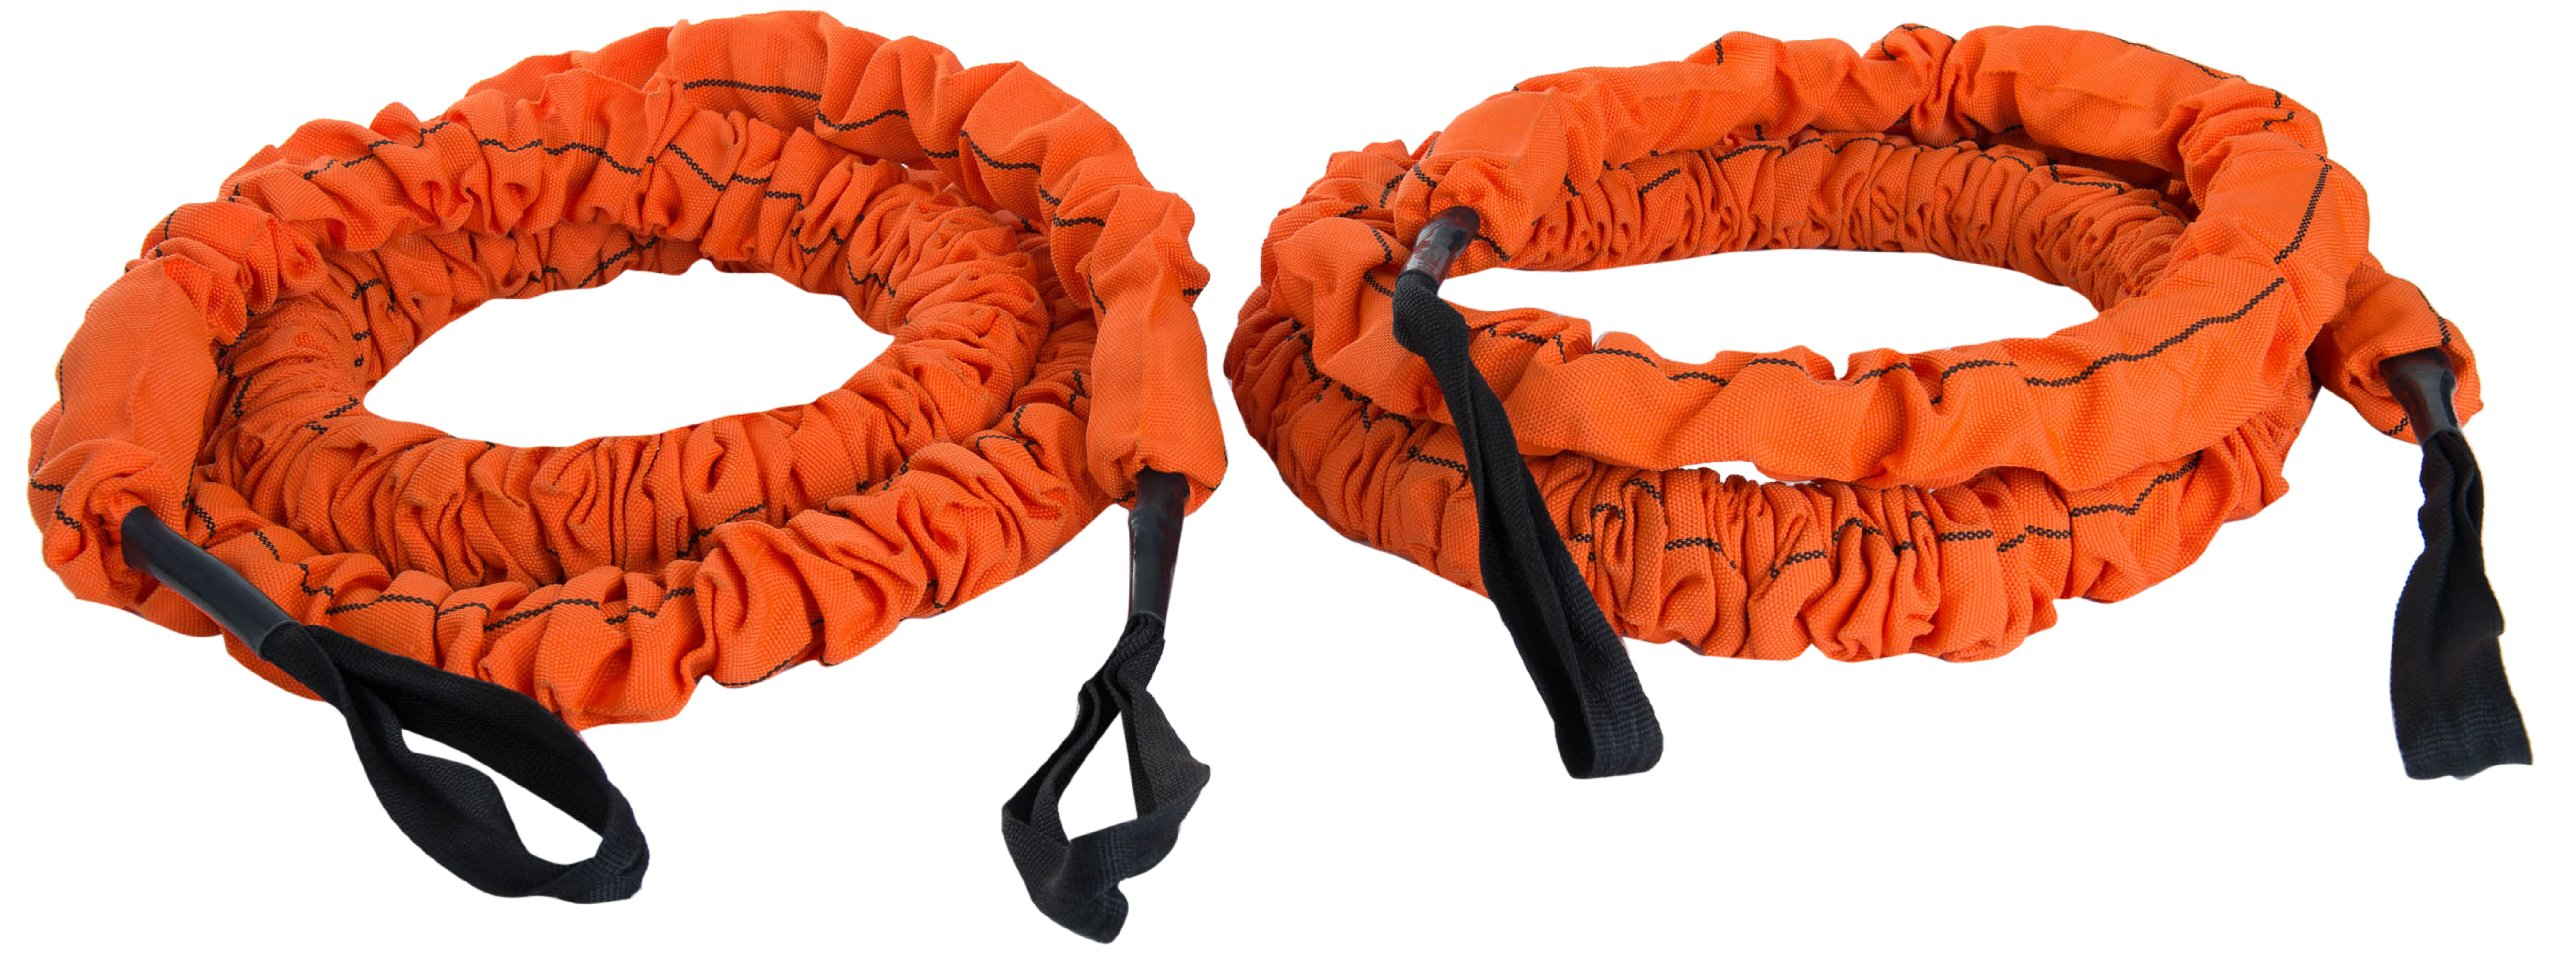 Stroops MMA 20 ft. The Beast Battle Rope Slastix with Orange Fabric Loops by STROOPS